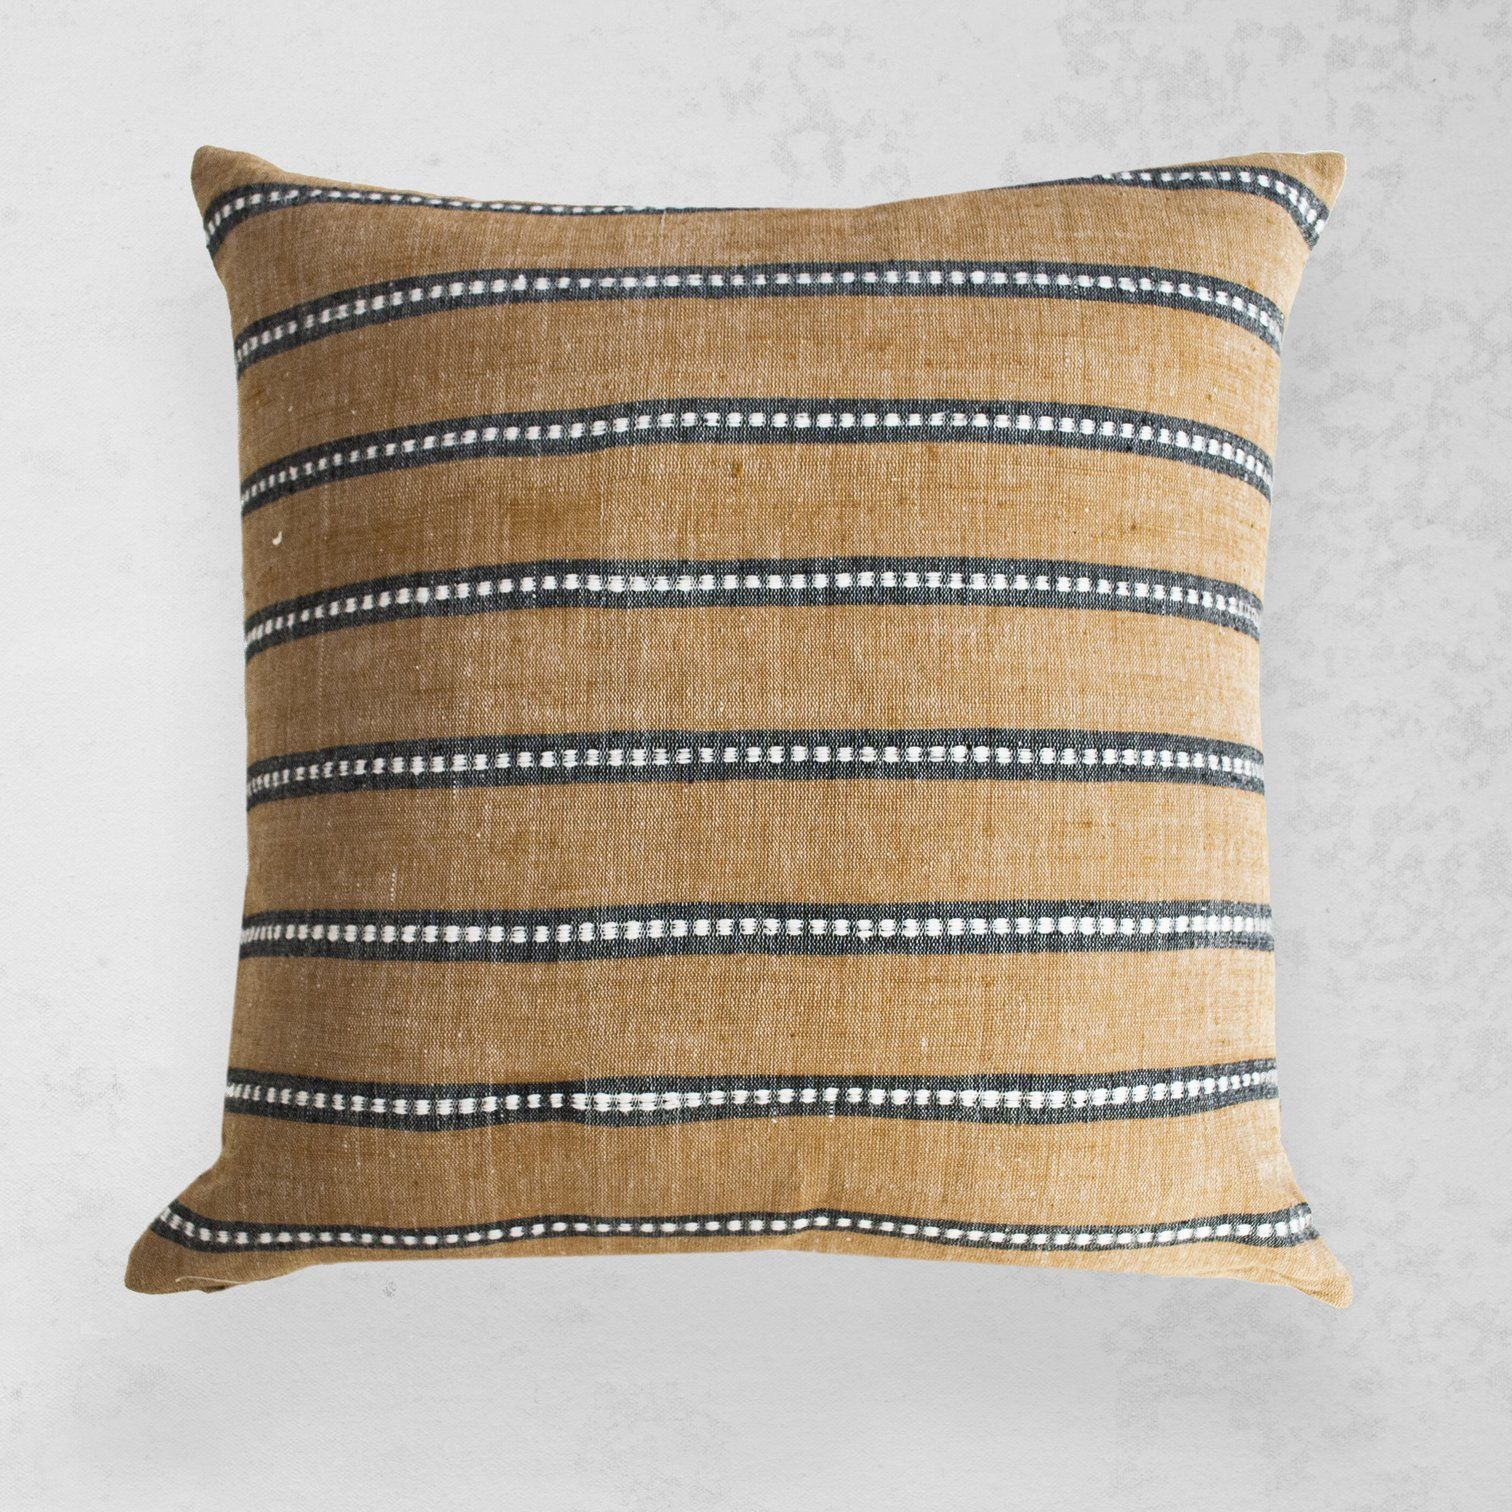 Kombolcha pillow tan homethingsprojects pillows textiles